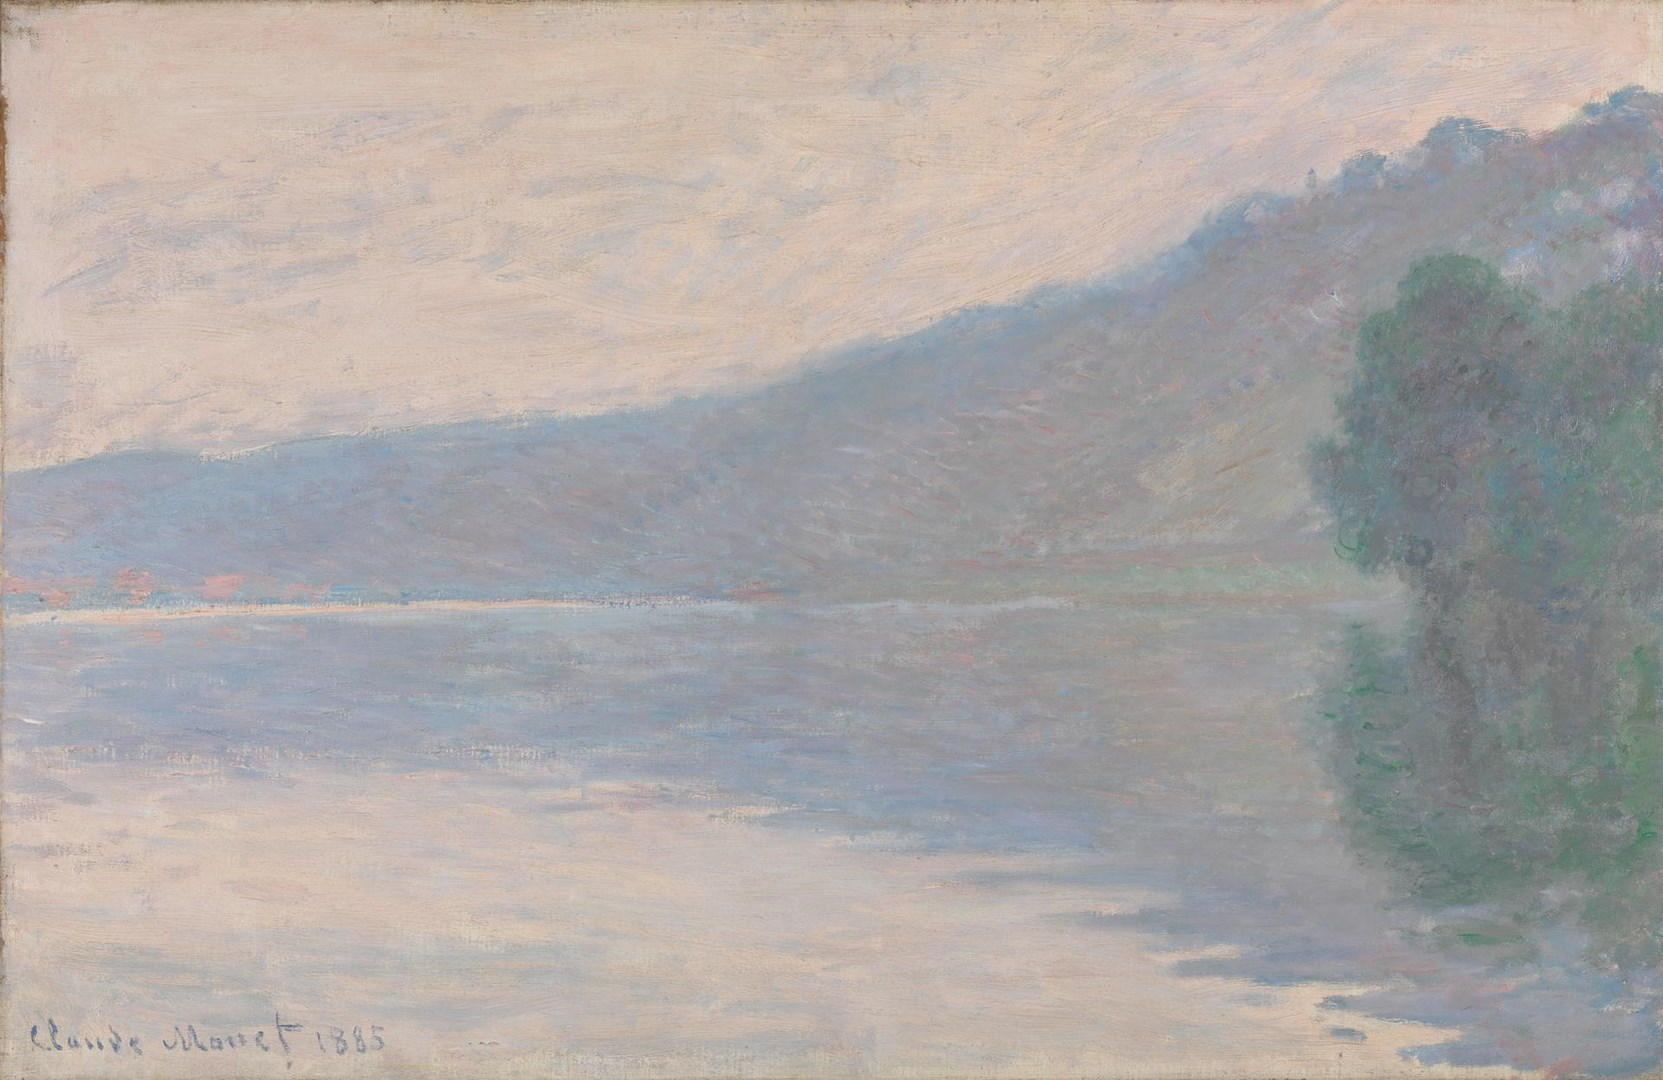 Claude Monet | The Seine at Port-Villez | L719 | National Gallery, London